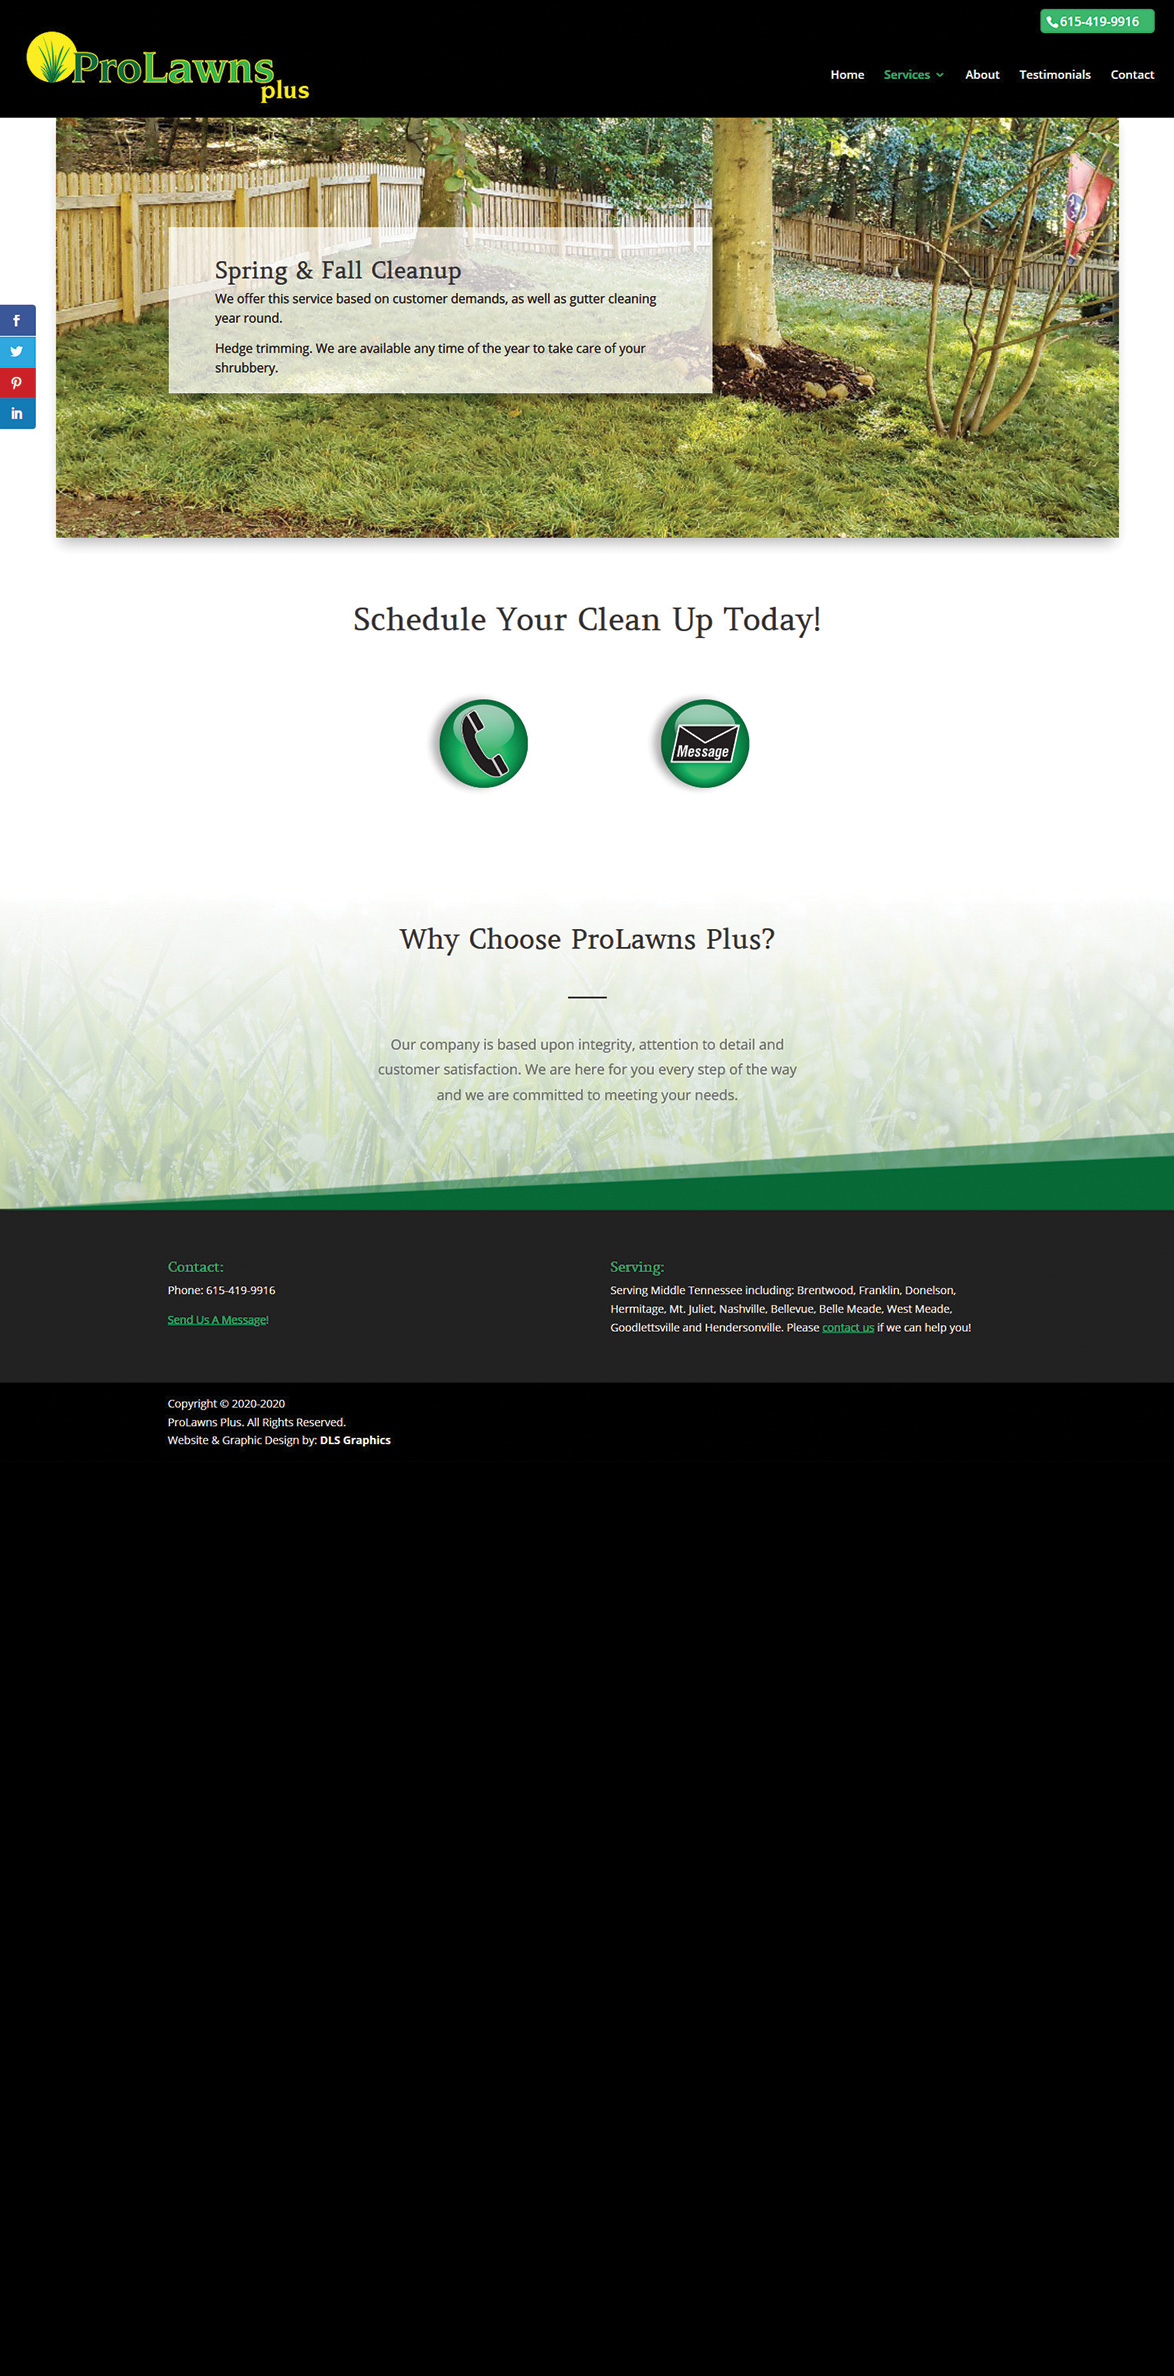 ProLawns Plus-Spring and Fall Cleanup